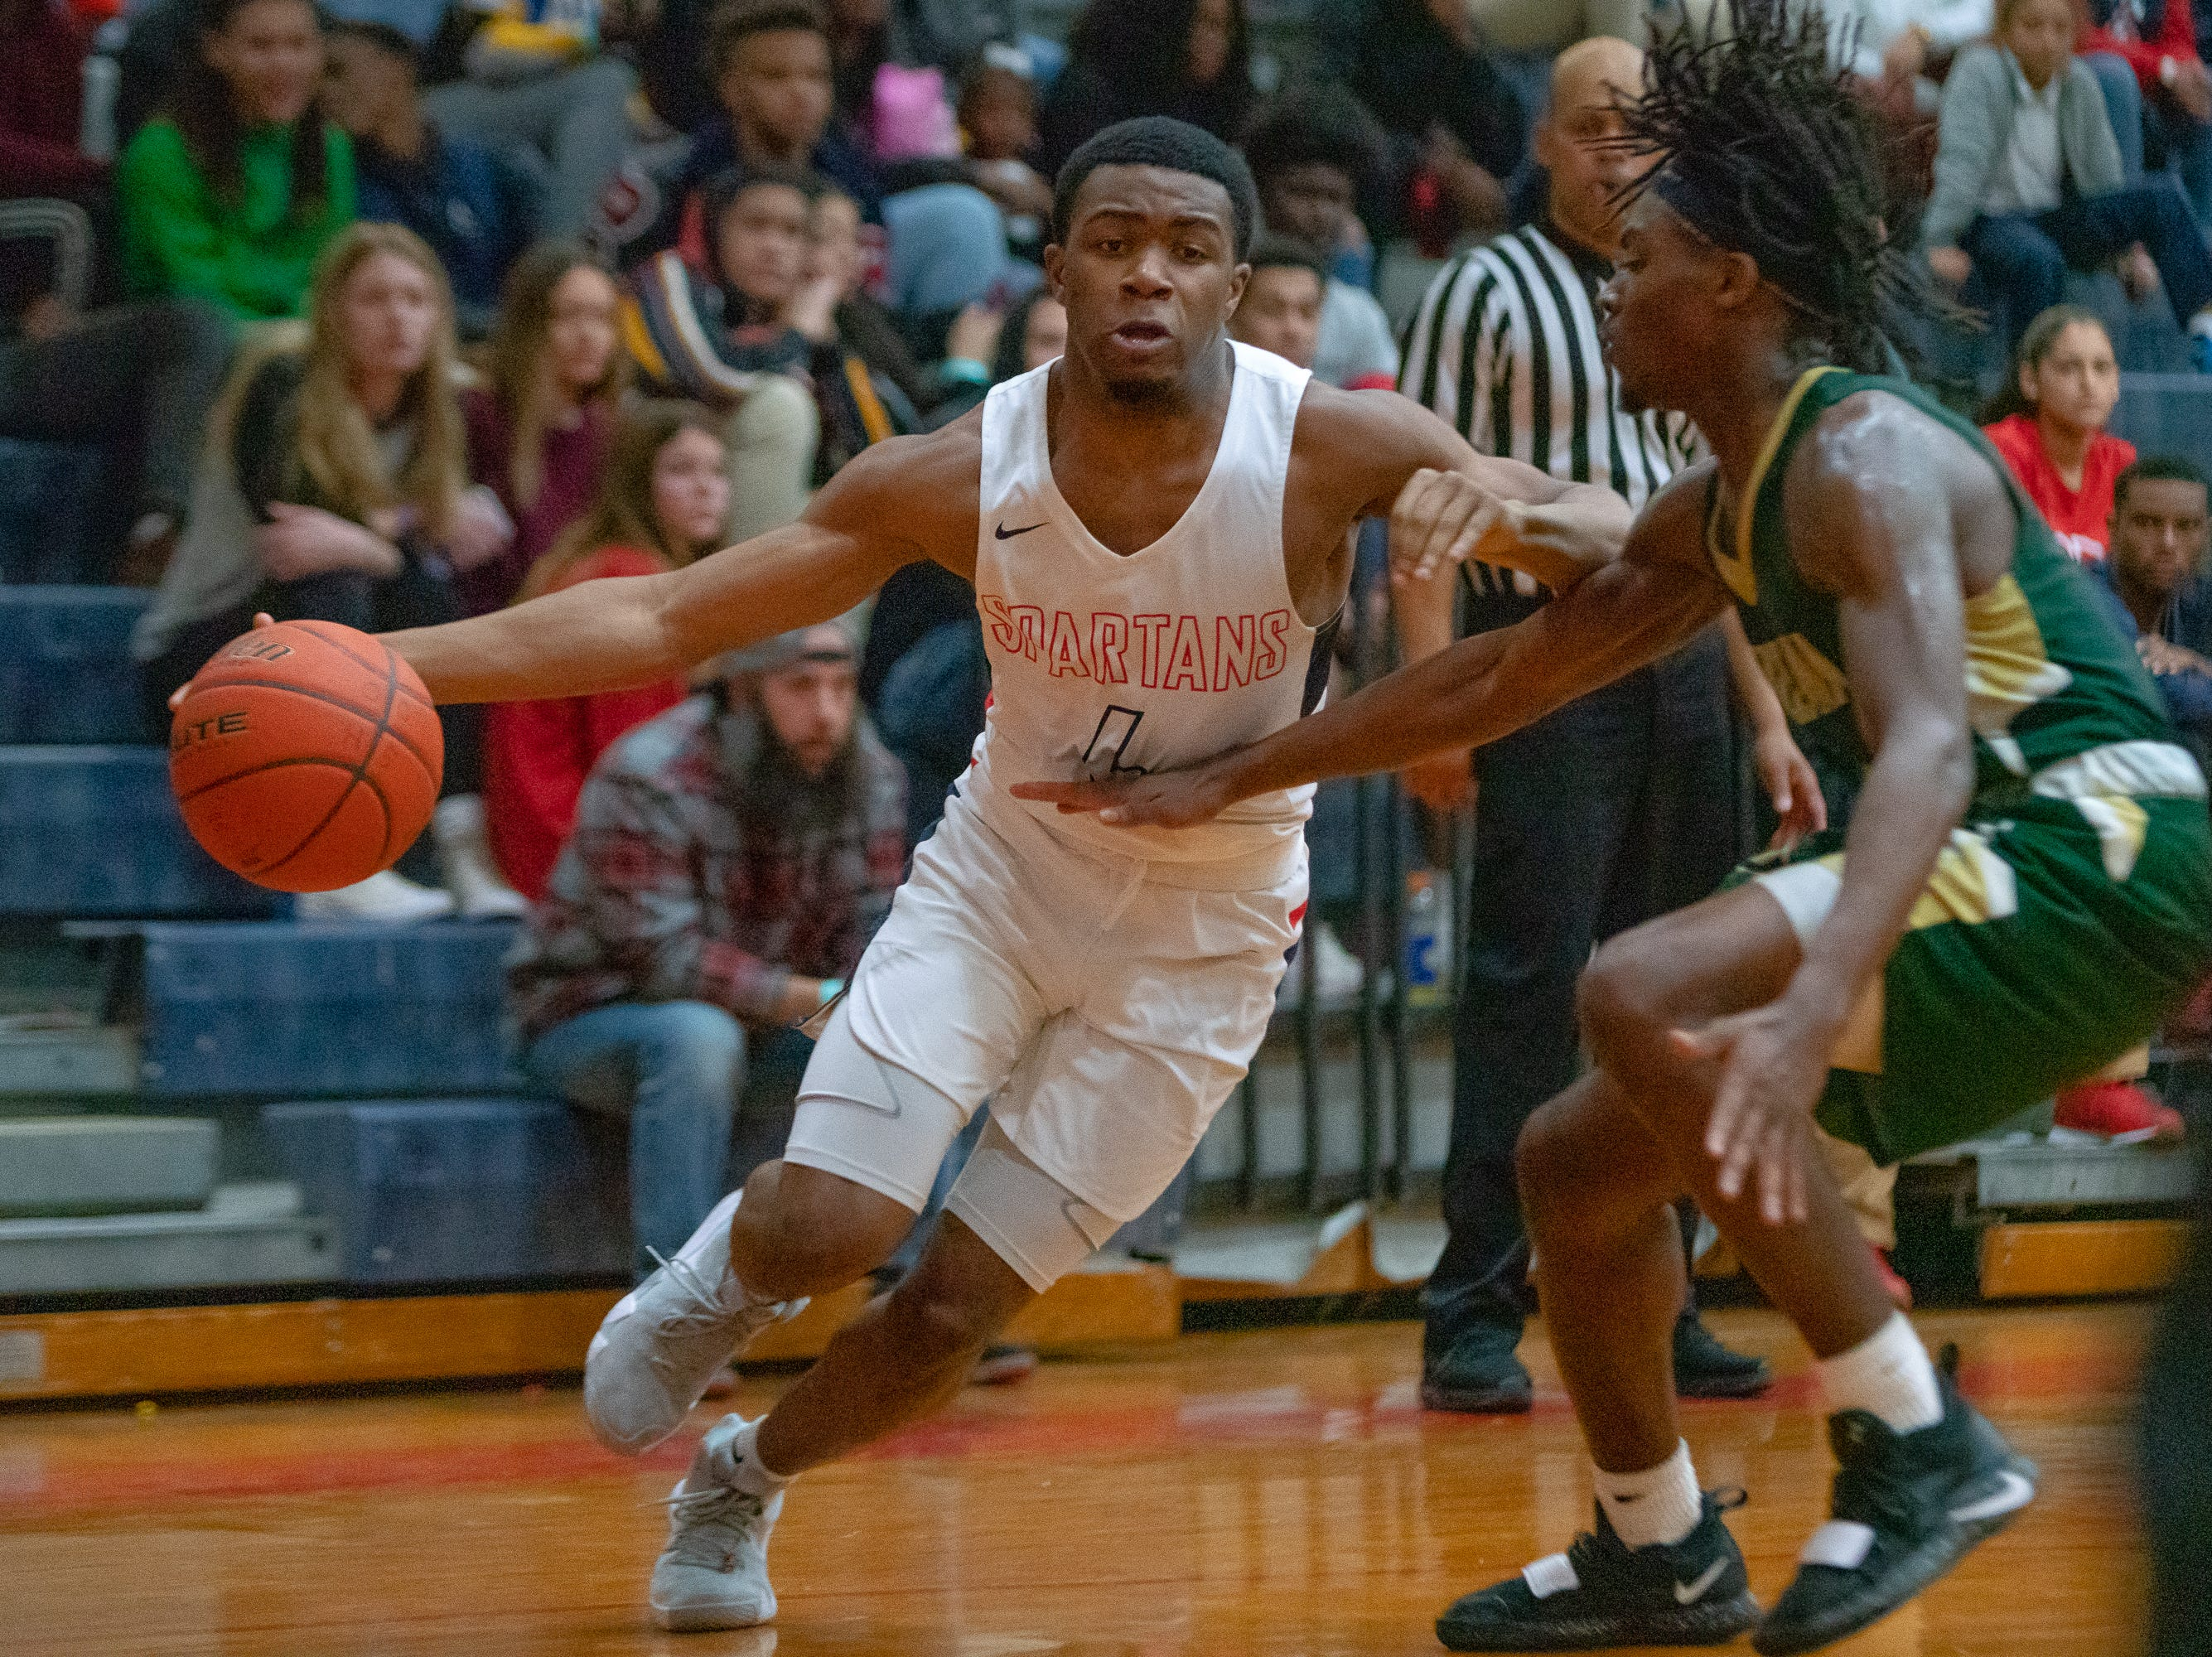 Comeaux High's Tyrone Young (4) drives the ball to the goal as the Comeaux High Spartans take on the Acadiana High Wreckin' Rams at Comeaux High School on Jan. 25, 2019.